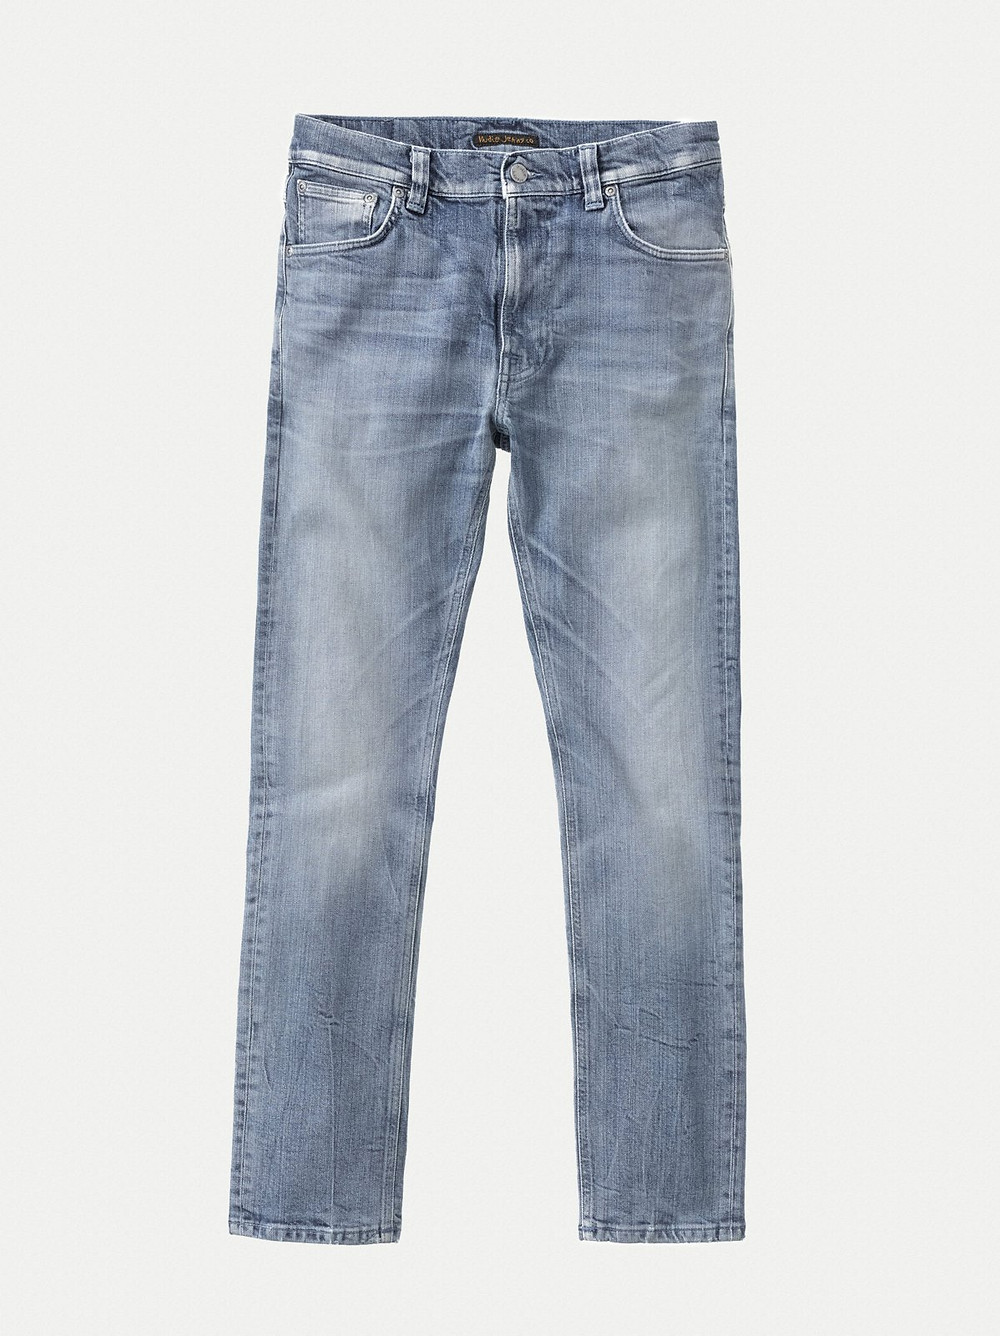 Nudie Jeans ヌーディジーンズ カプセルコレクション capsule collection Green_